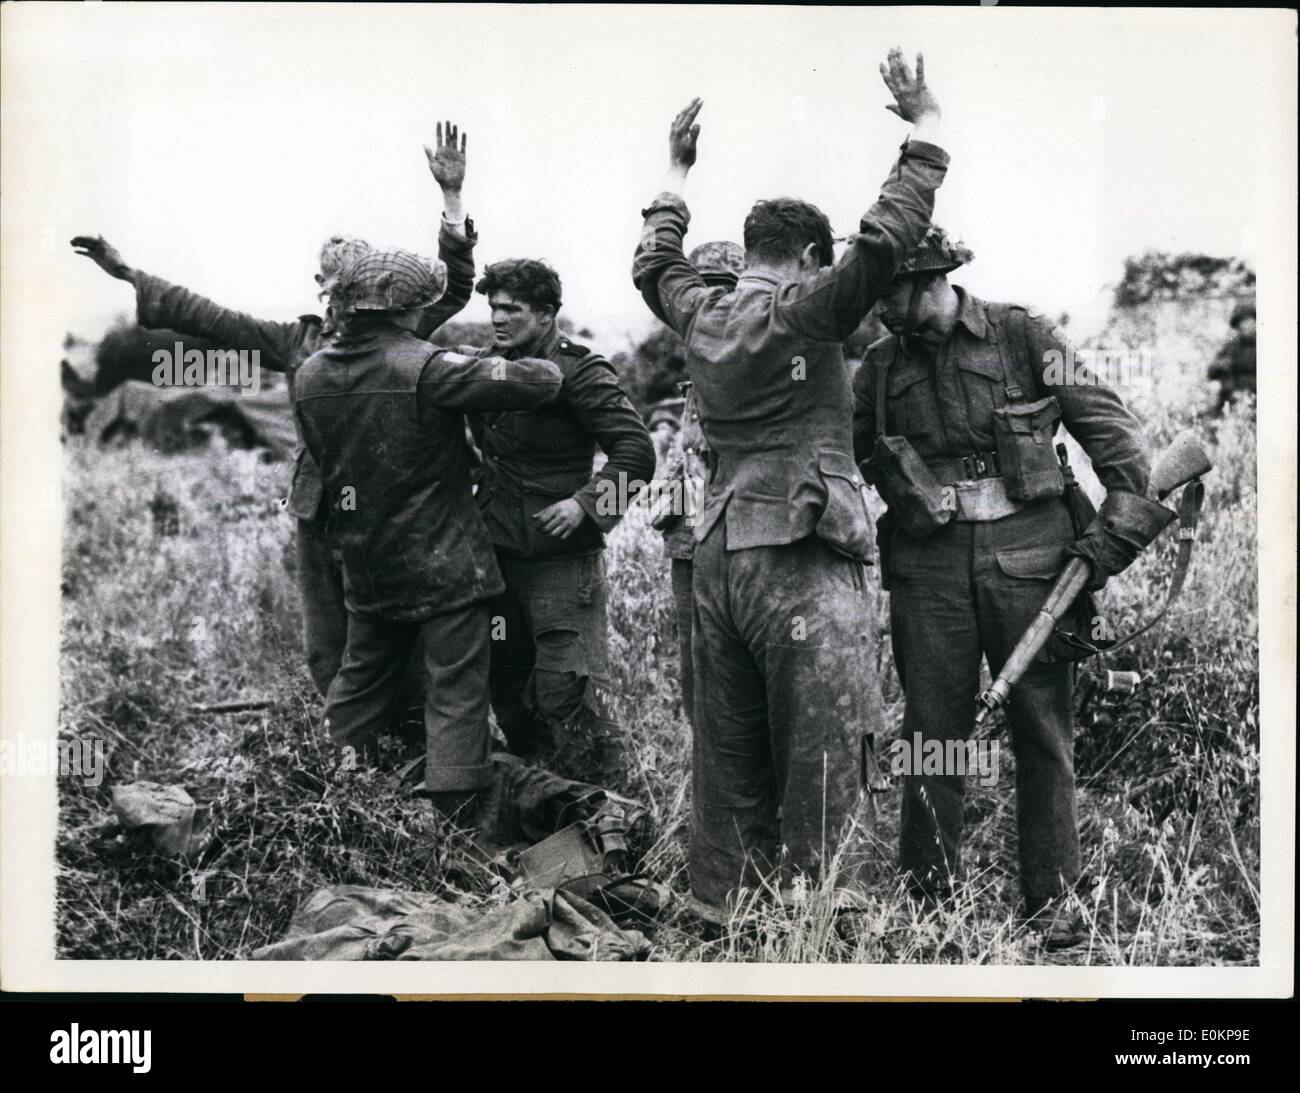 Jul. 07, 1944 - German Youths Taken Prisoner In France: Canadian Soldiers search youthful German prisoners who surrendered Stock Photo